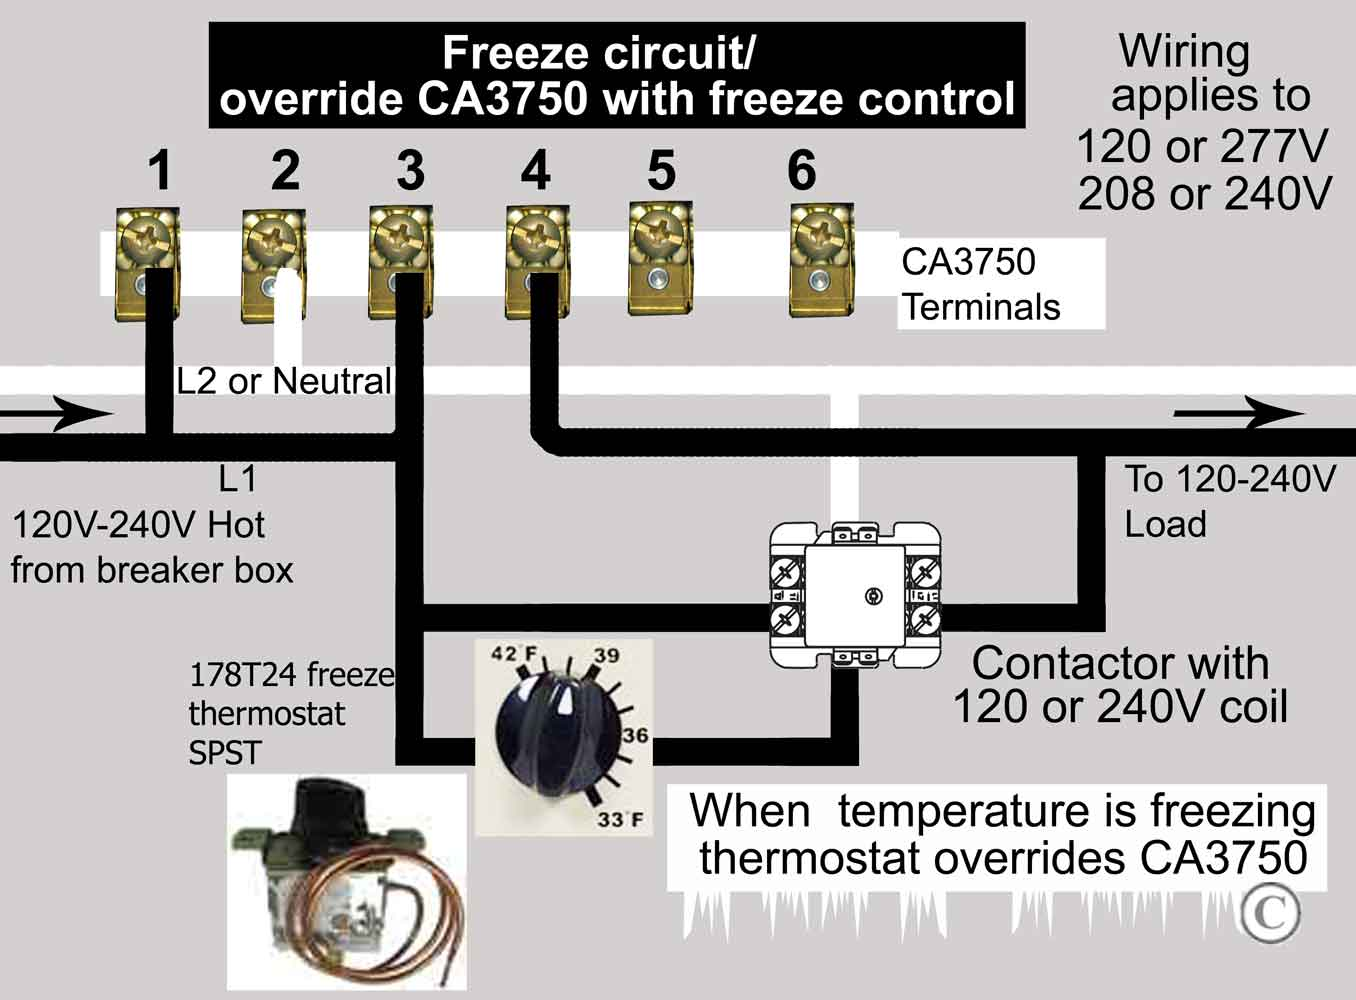 CA3750 control SPDT 120V w freeze2 how to wire ca3750 z wave contactor zwave basics  at webbmarketing.co